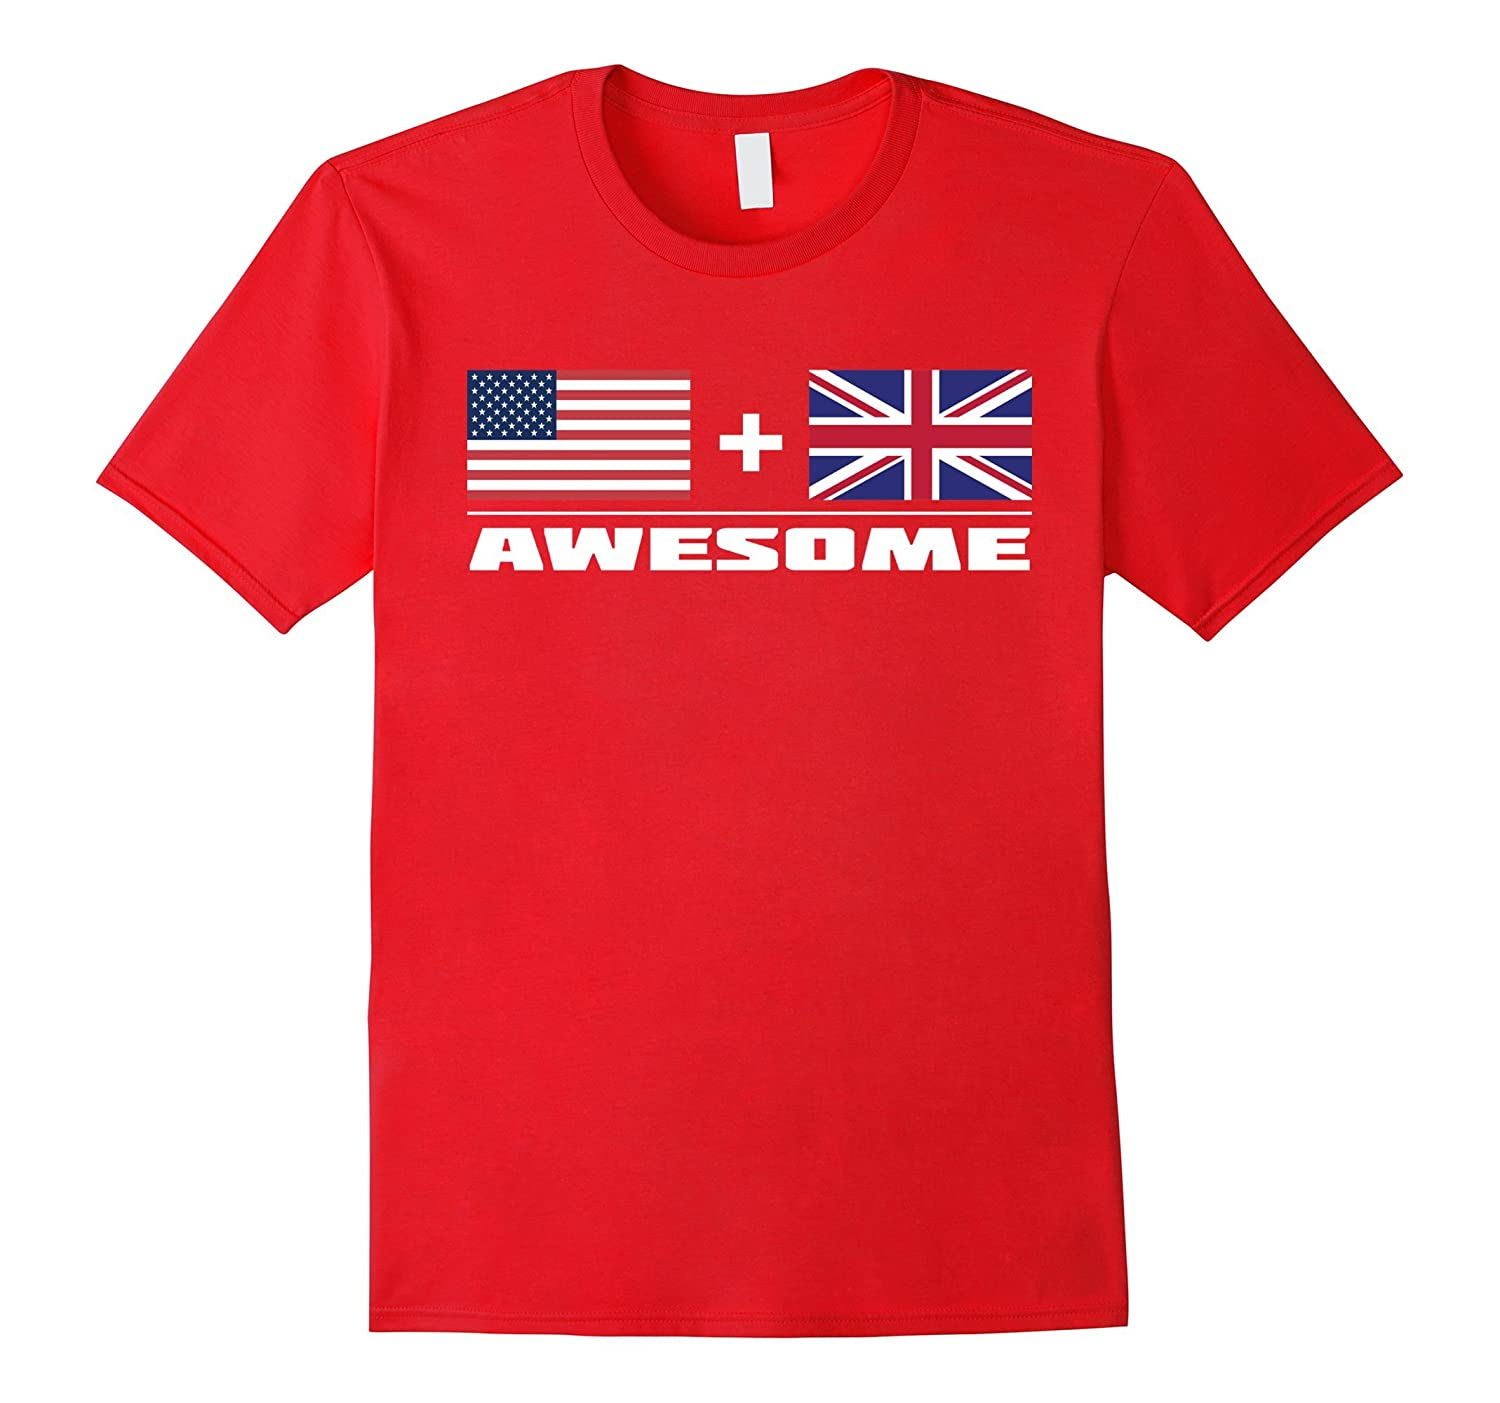 American + British = Awesome USA and UK Flags T-Shirt-T-Shirt